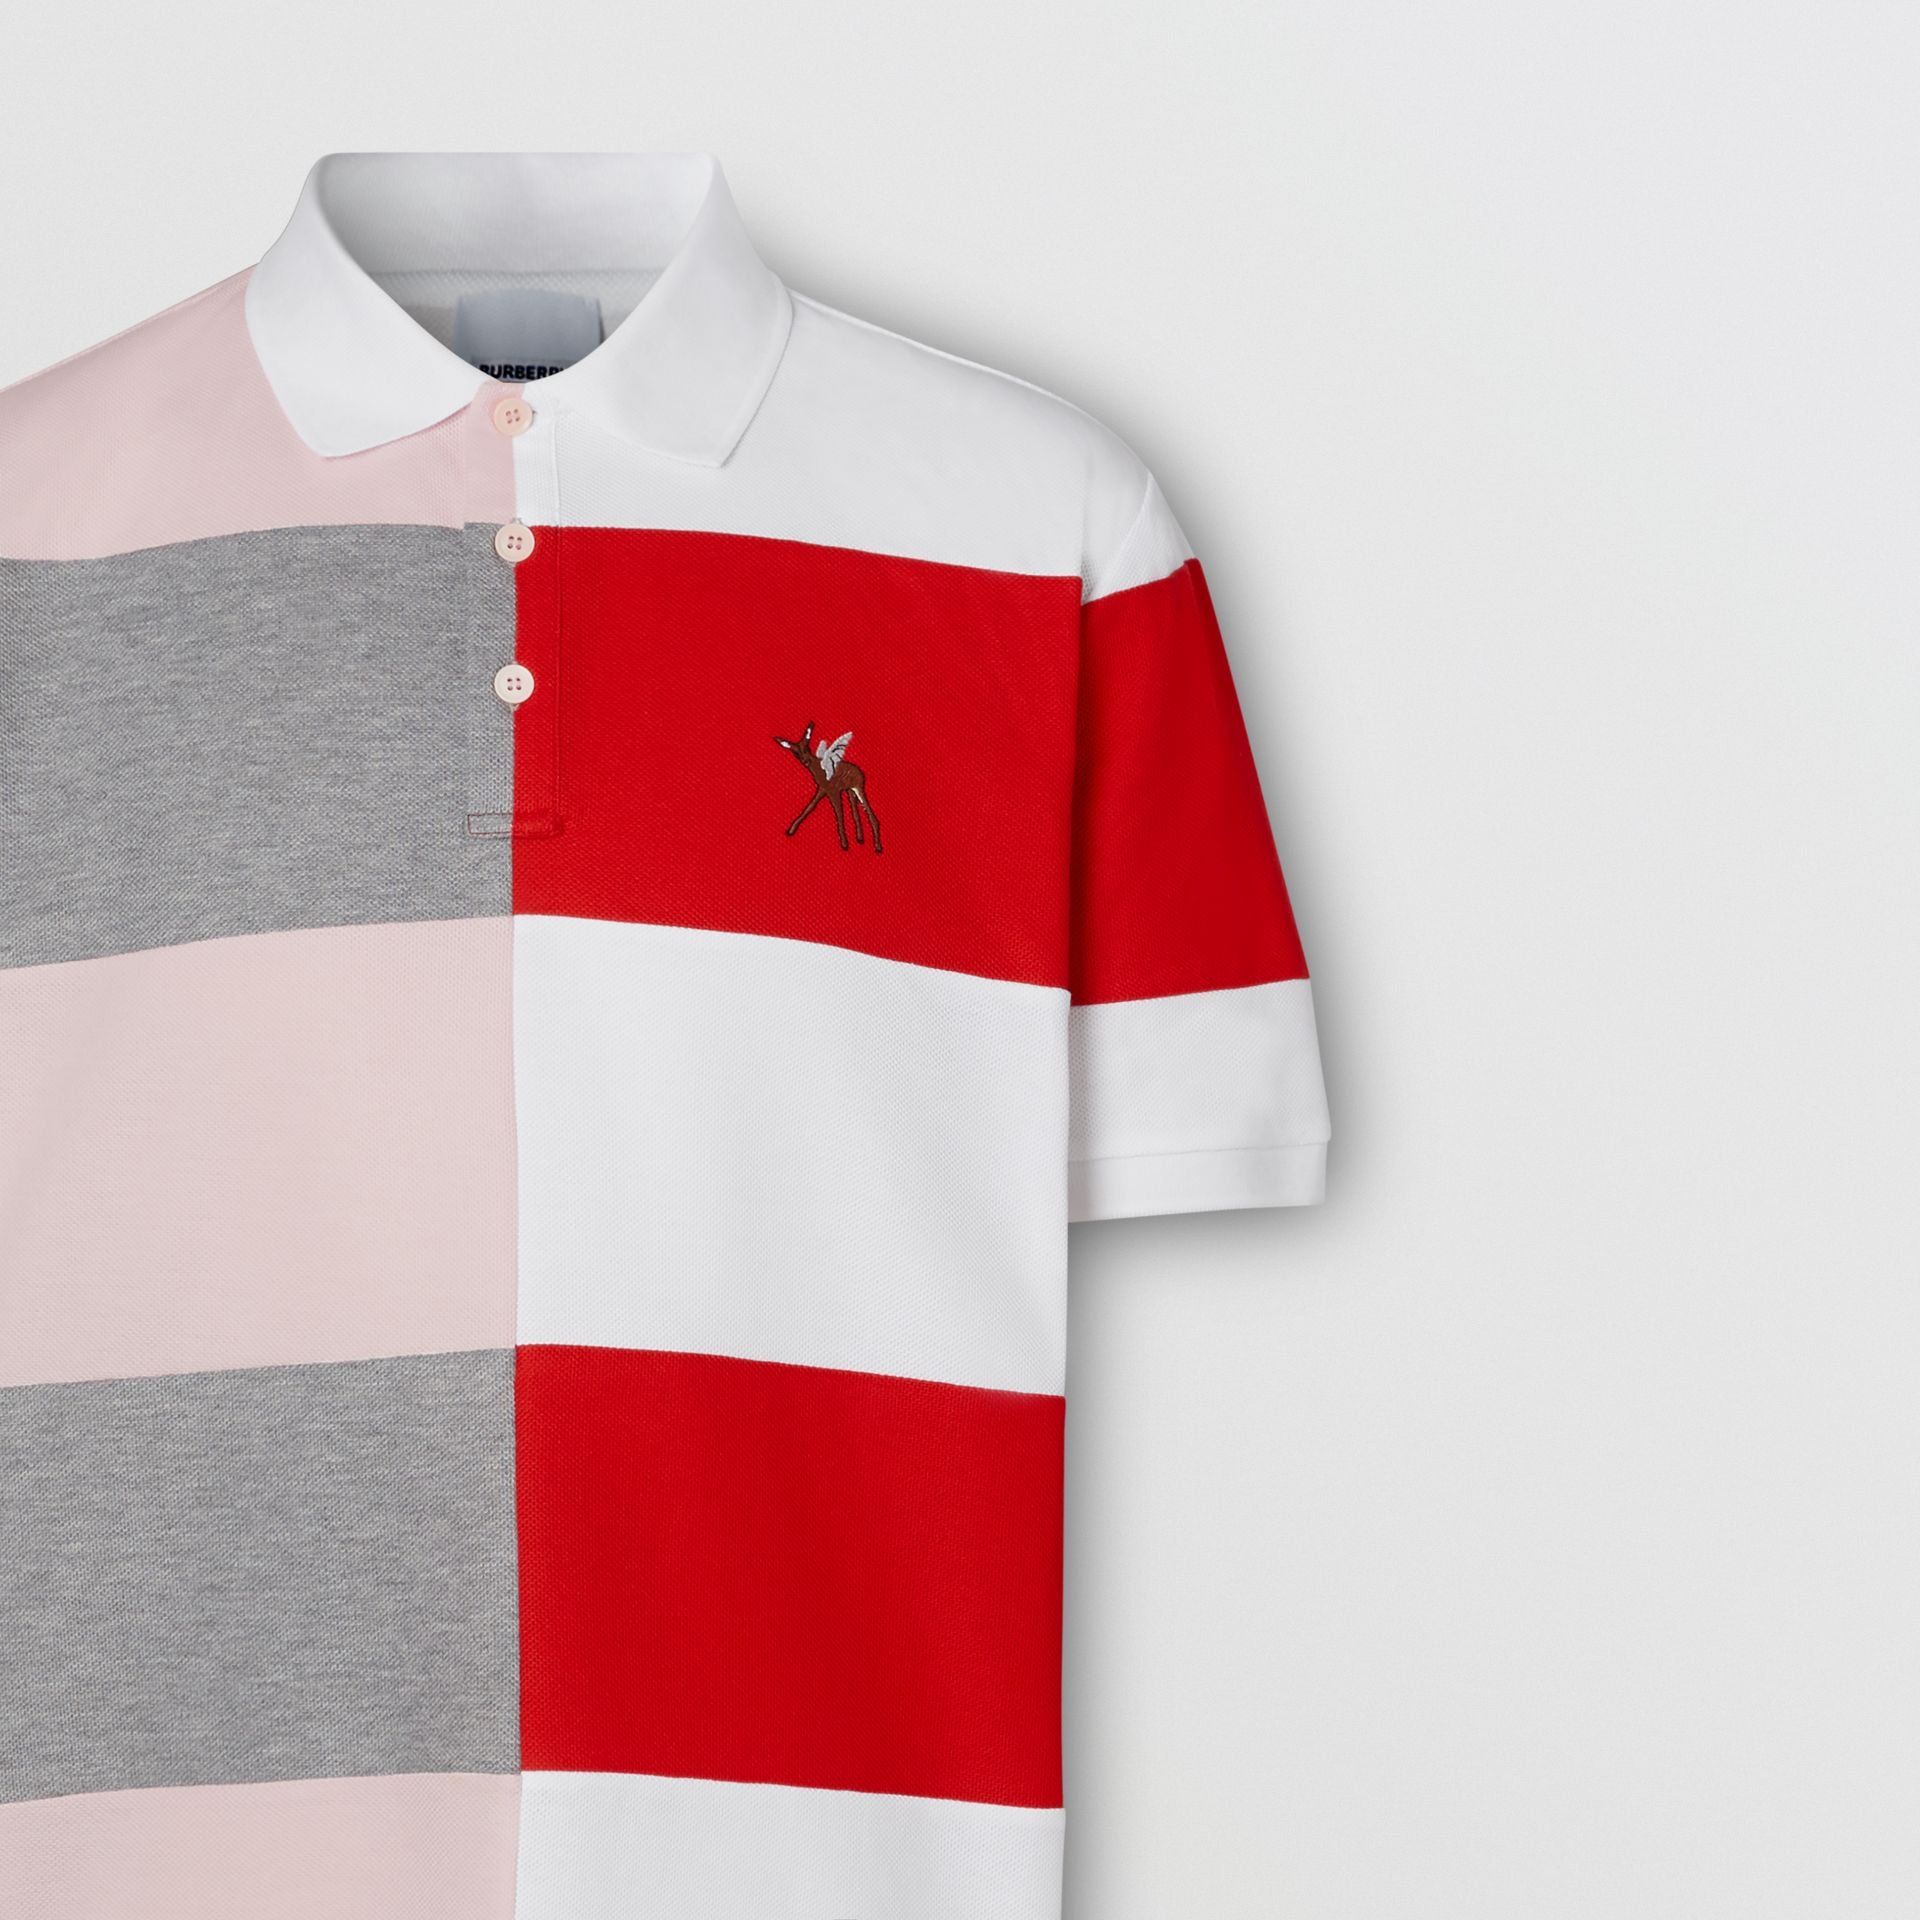 Deer Motif Colour Block Oversized Polo Shirt – Online Exclusive in Alabaster Pink - Men | Burberry - gallery image 6